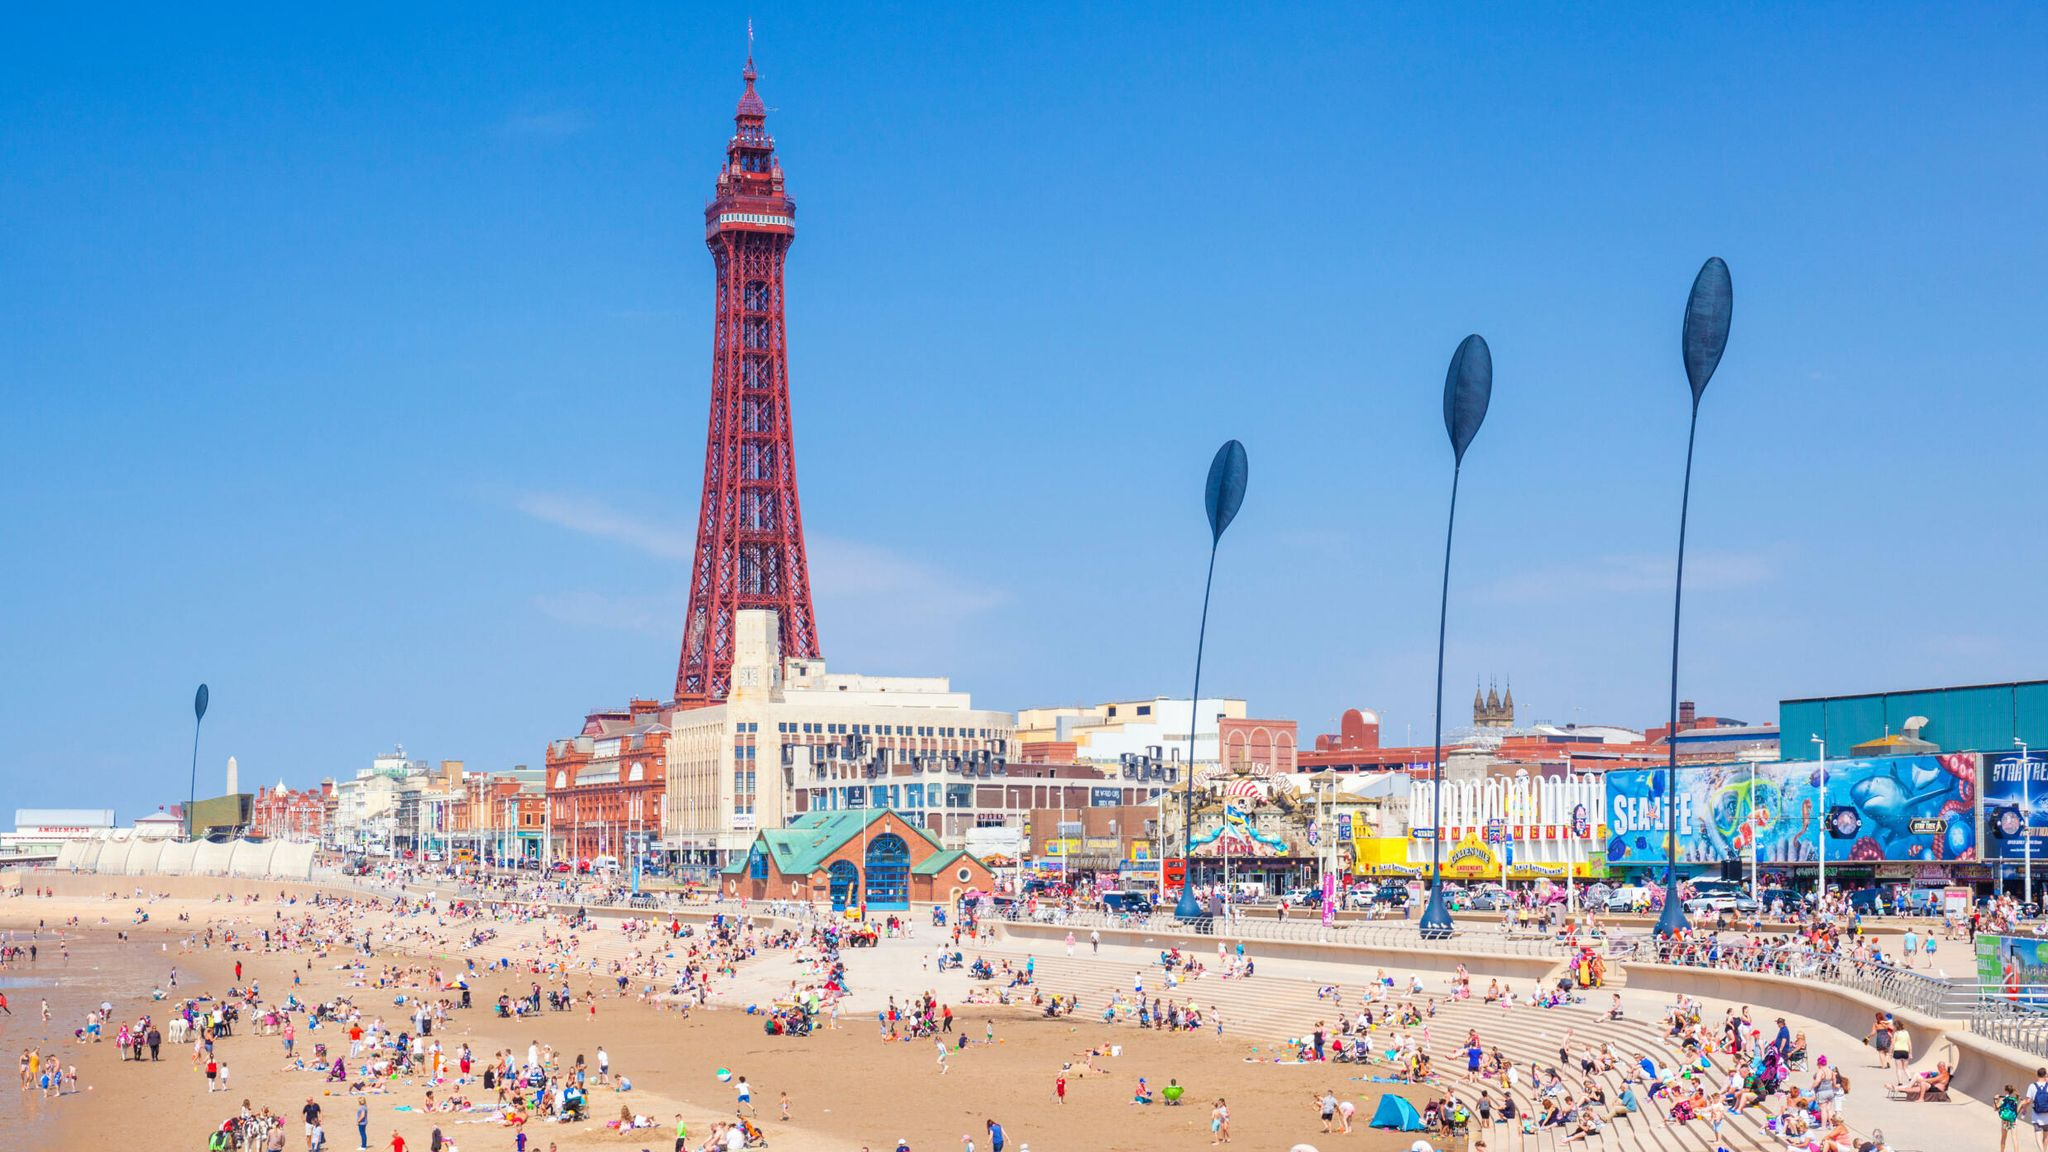 Coronavirus: Sturgeon warns over Blackpool trips after at least 180  Scottish cases linked to town | UK News | Sky News